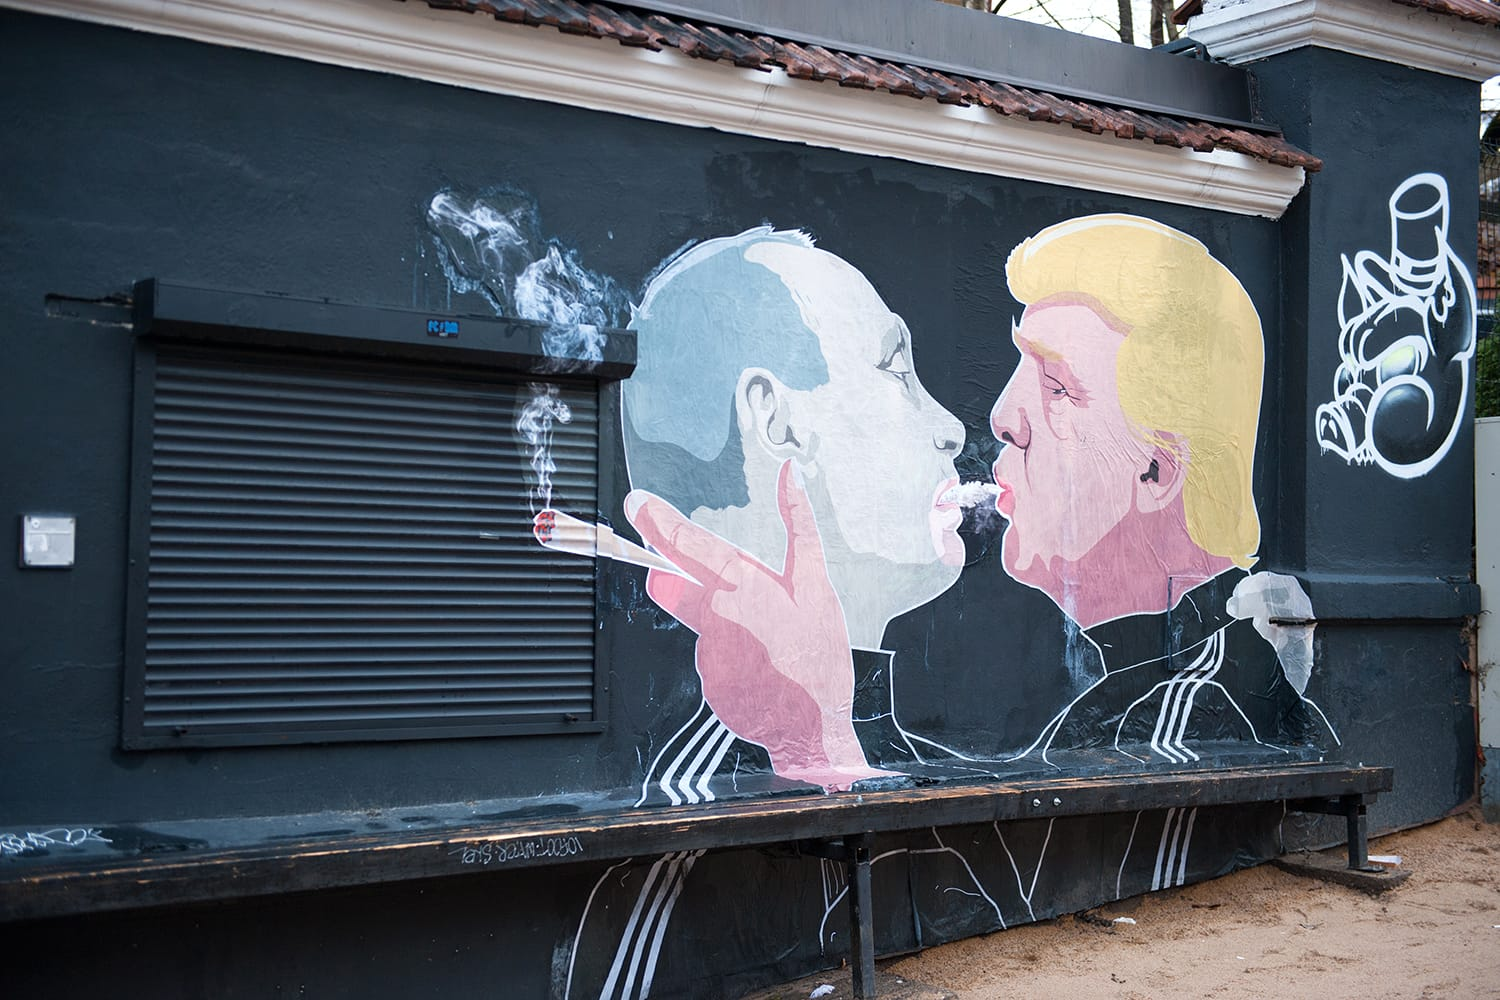 Russian President Vladimir Putin and U.S. president Donald Trump are kissing on the side of a barbecue restaurant in Vilnius, Lithuania